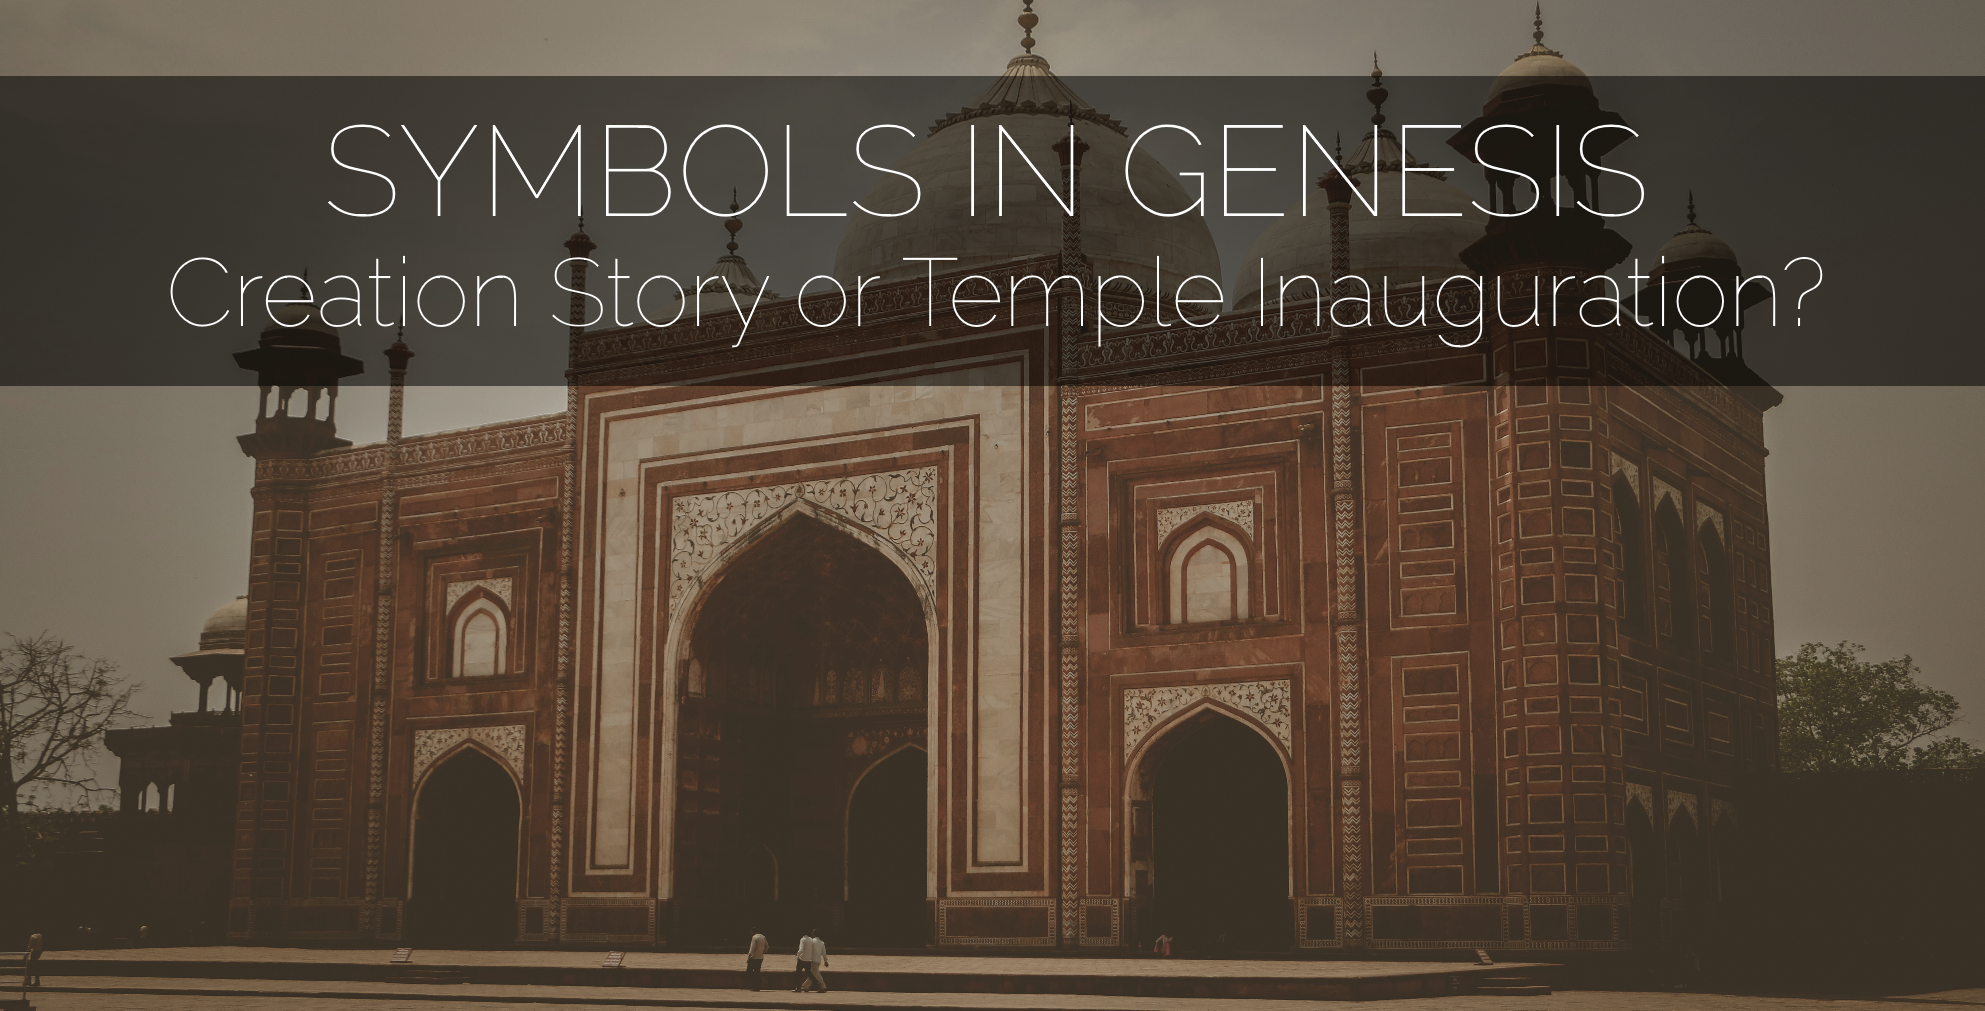 Symbols in genesis creation story or temple inauguration brazen symbols in genesis creation story or temple inauguration brazen church biocorpaavc Images